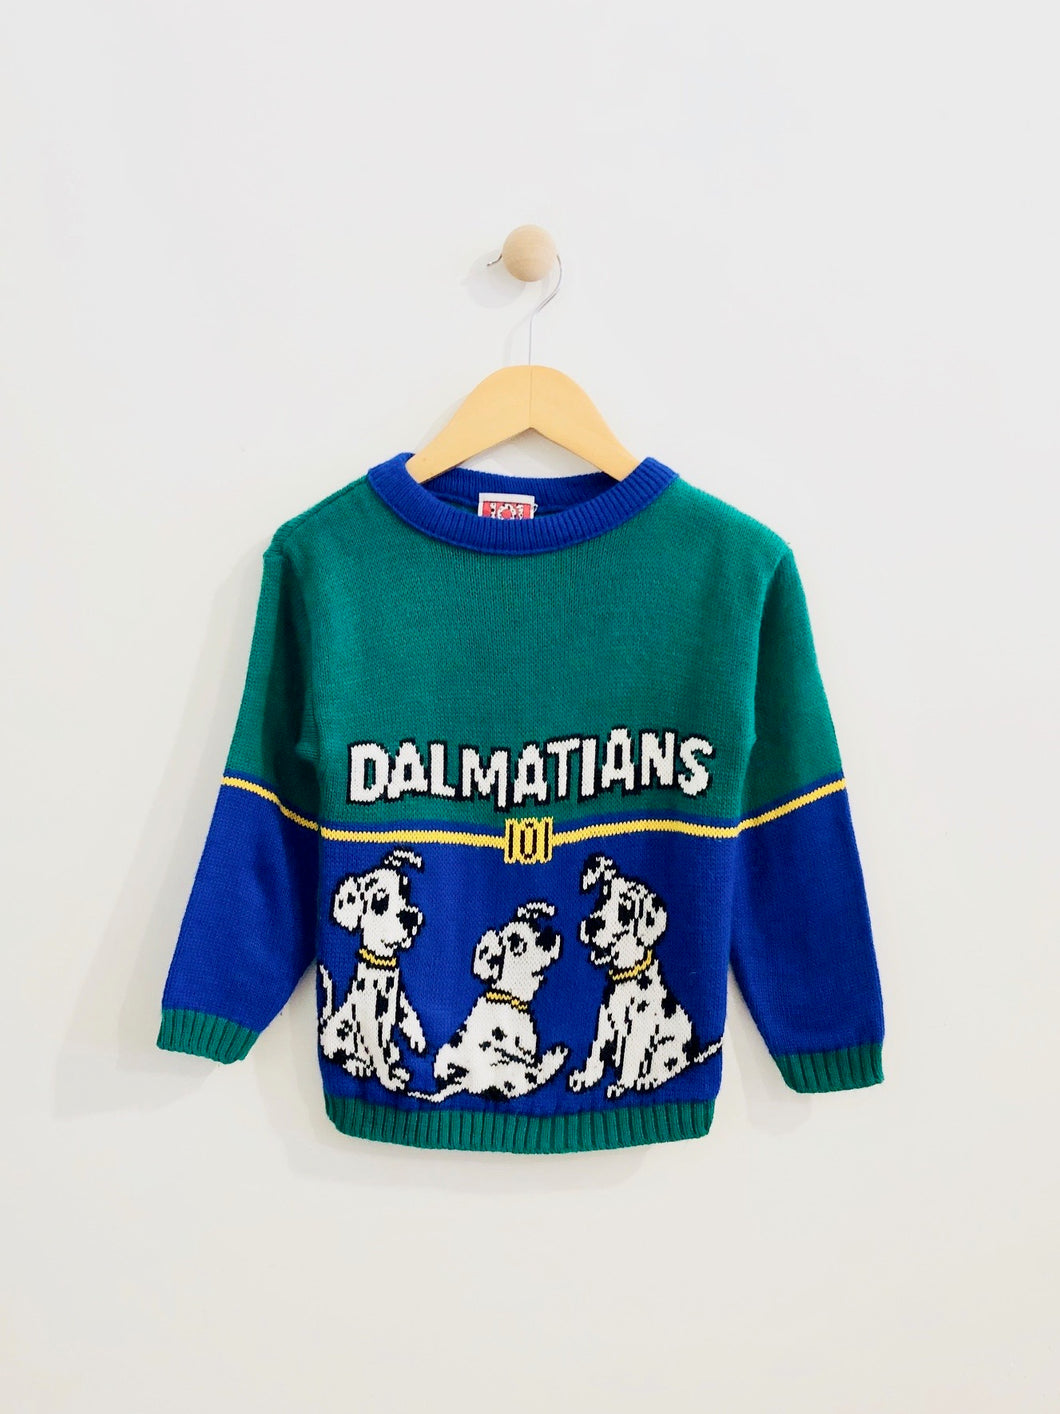 101 dalmatians sweater / 4-5T